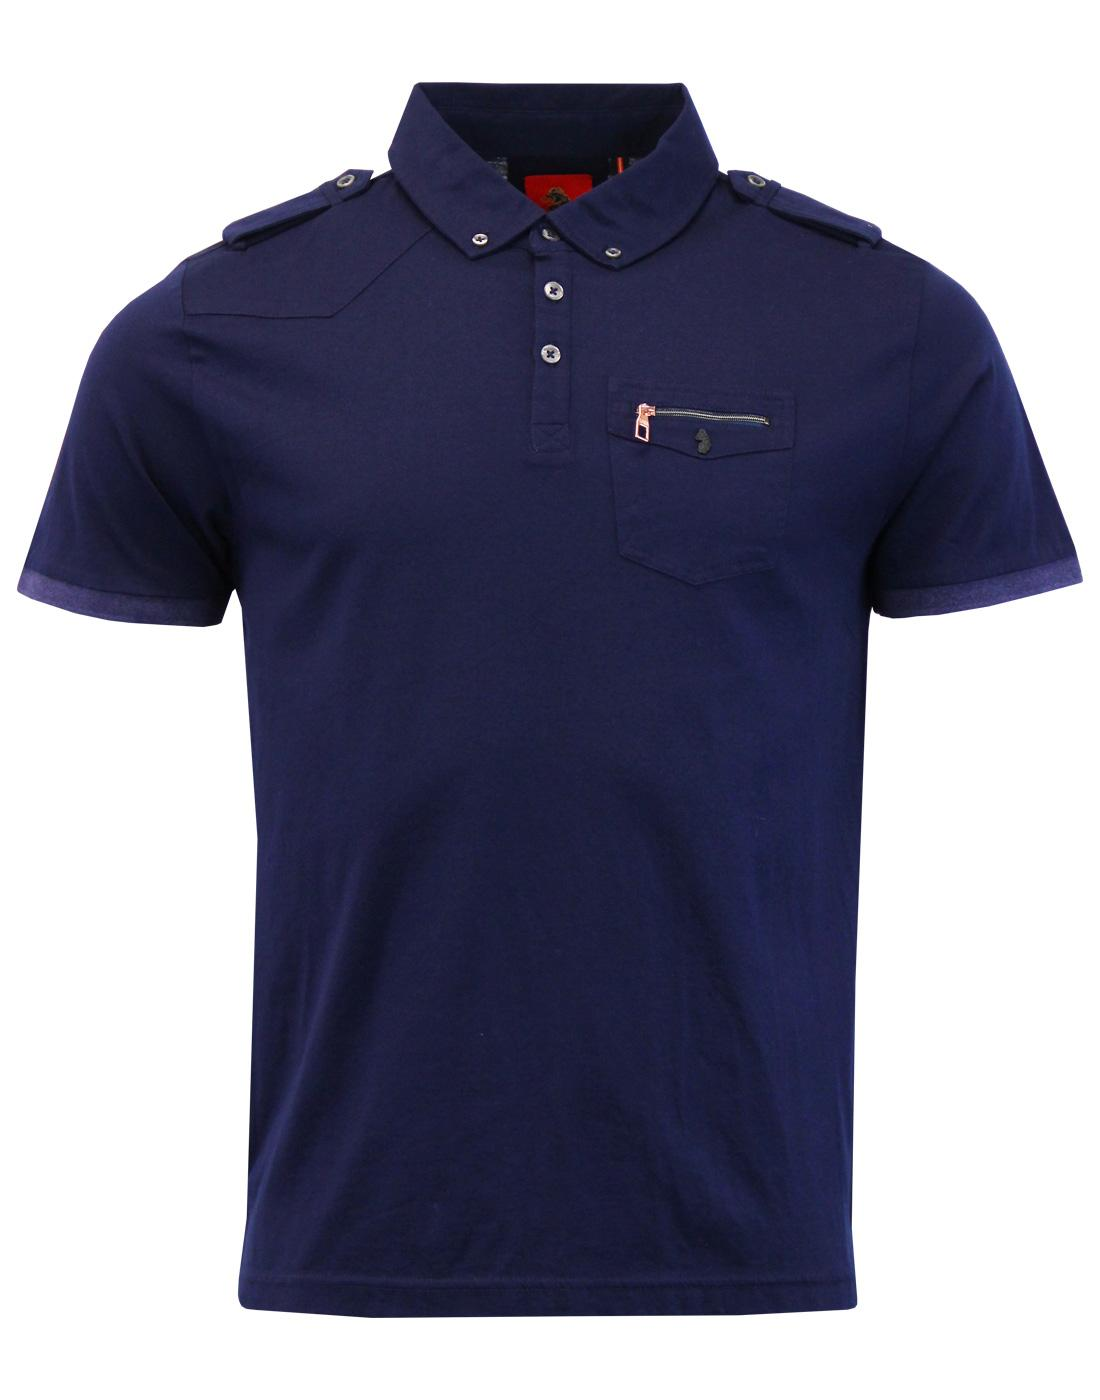 Privates LUKE 1977 Retro Military Mod Polo Top DN